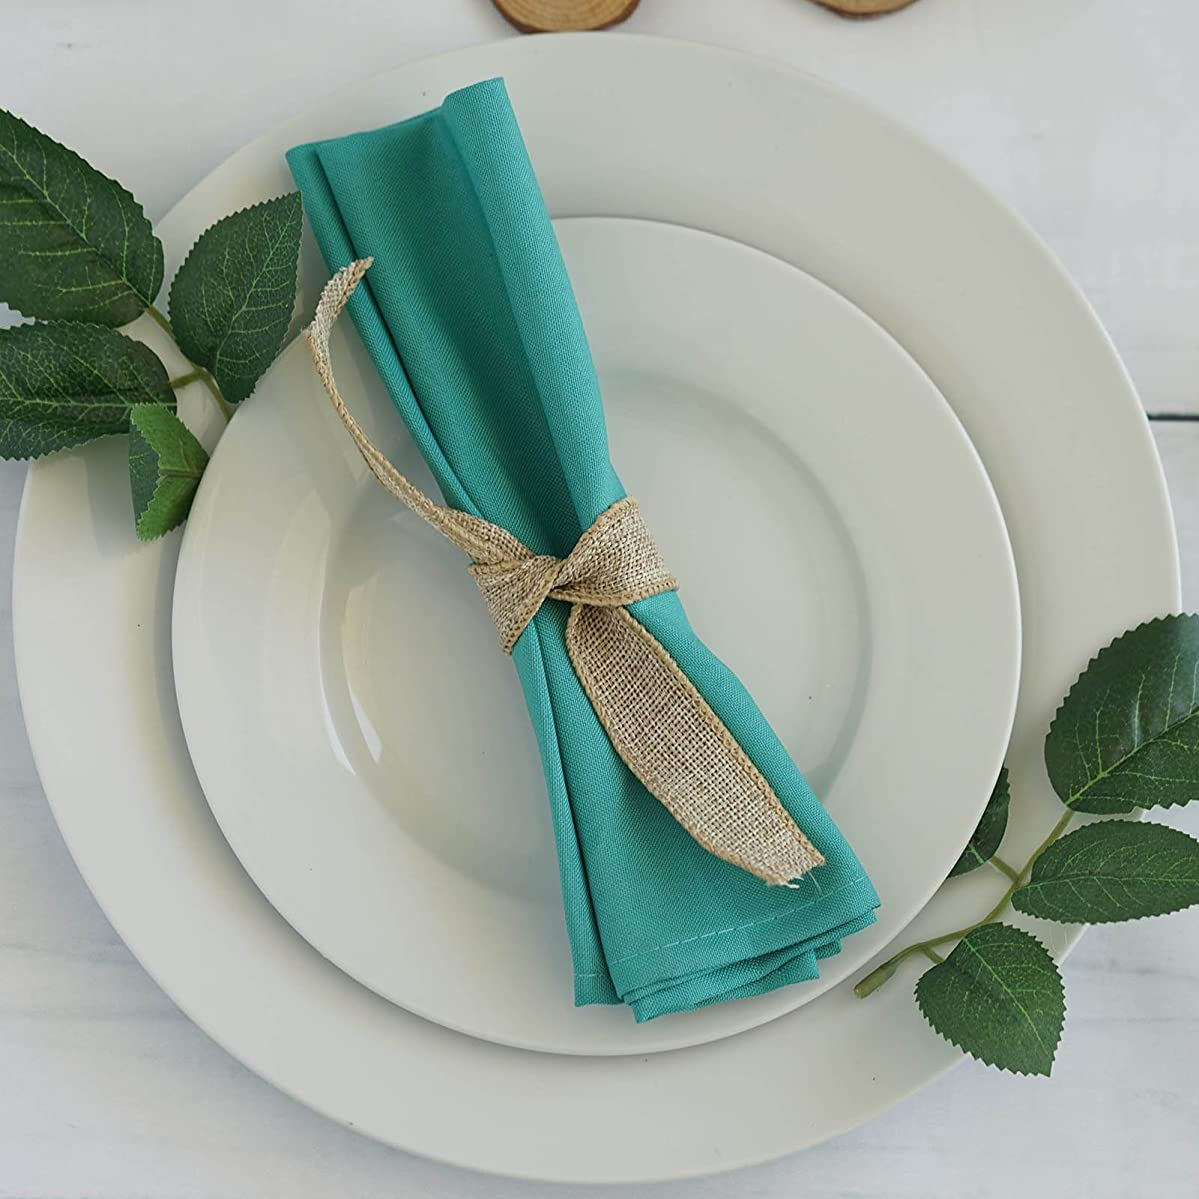 BalsaCircle 20 pcs 17-Inch Turquoise Polyester Luncheon Napkins - for Wedding Party Reception Events Restaurant Kitchen Home